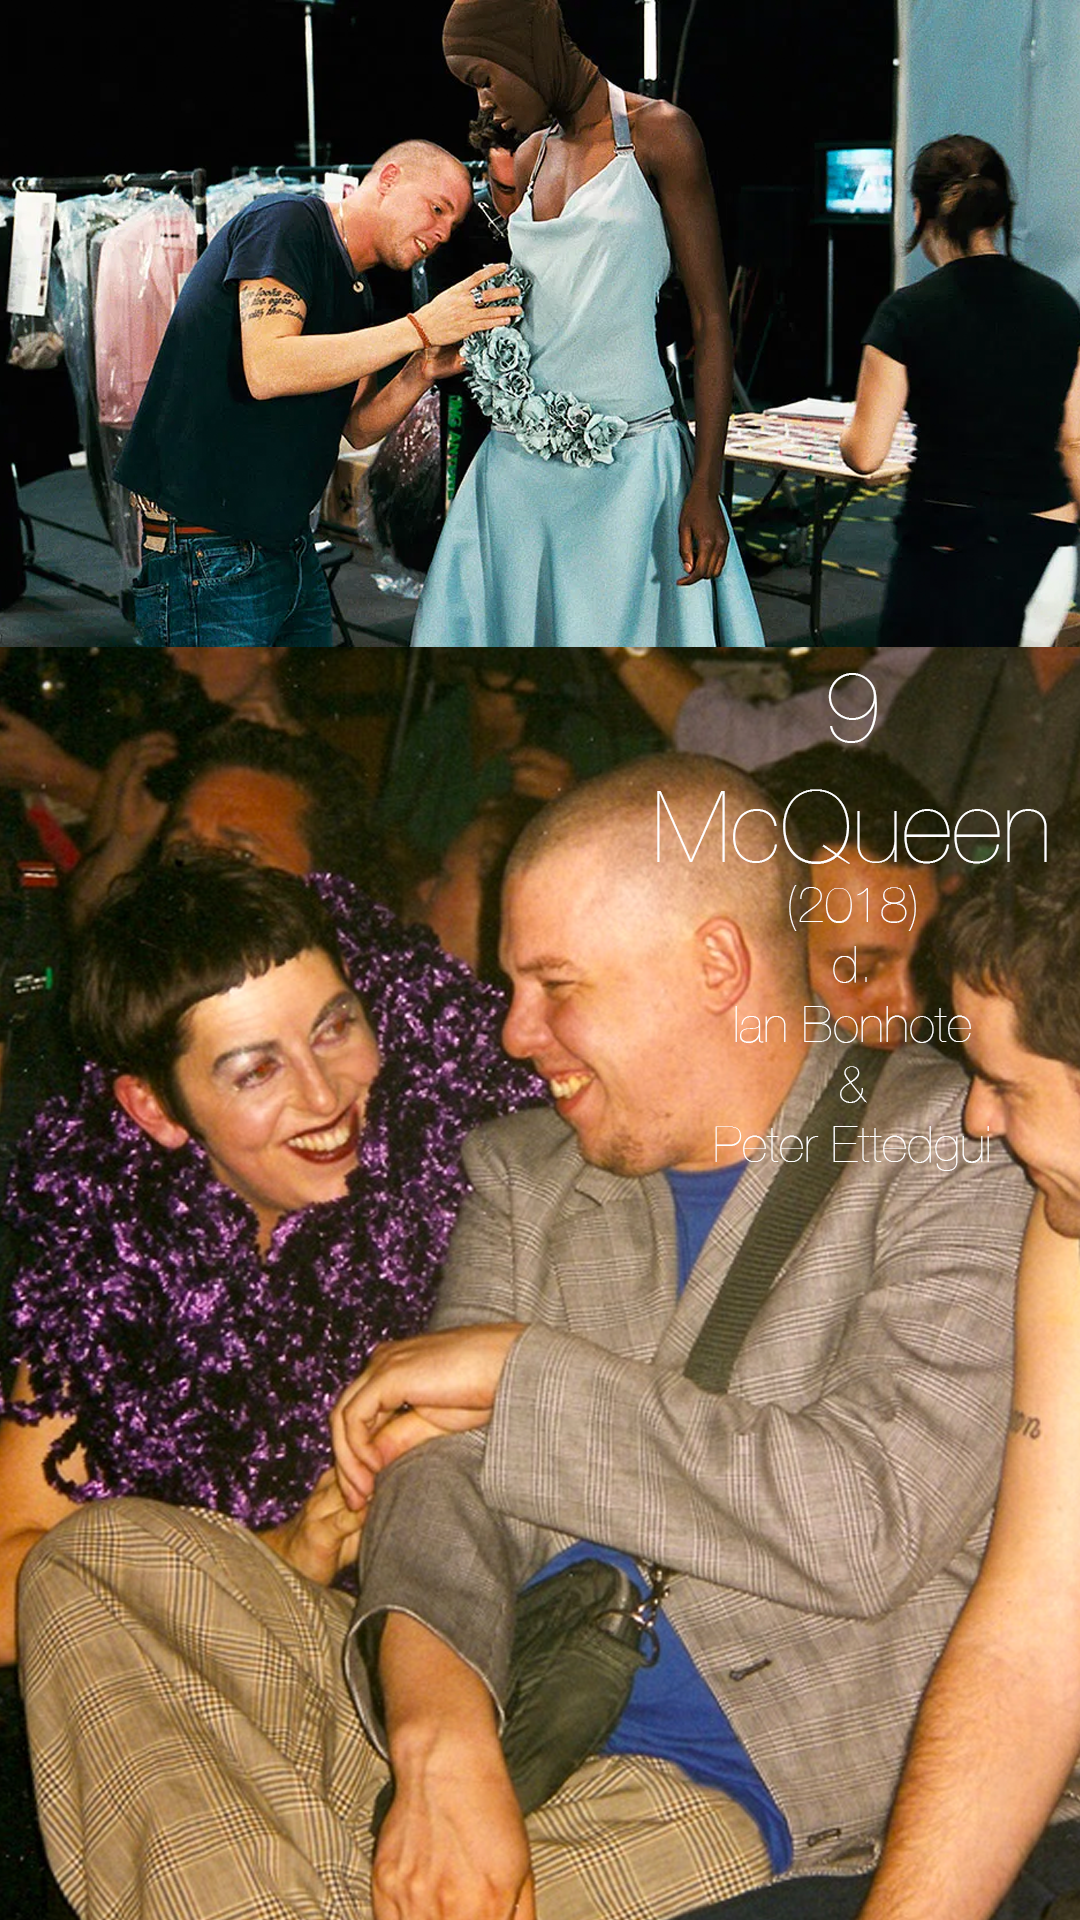 This film about fashion designer Alexander McQueen could not have sounded further away from something I was interested in before I watched it, but within 5 minutes of this documentary about the avant-garde rebellious nature of this artist, I was hooked. The music of this is an added bonus, but I loved learning a lot more about a subject I never think much about. I'm now convinced that high fashion is one big inside joke.